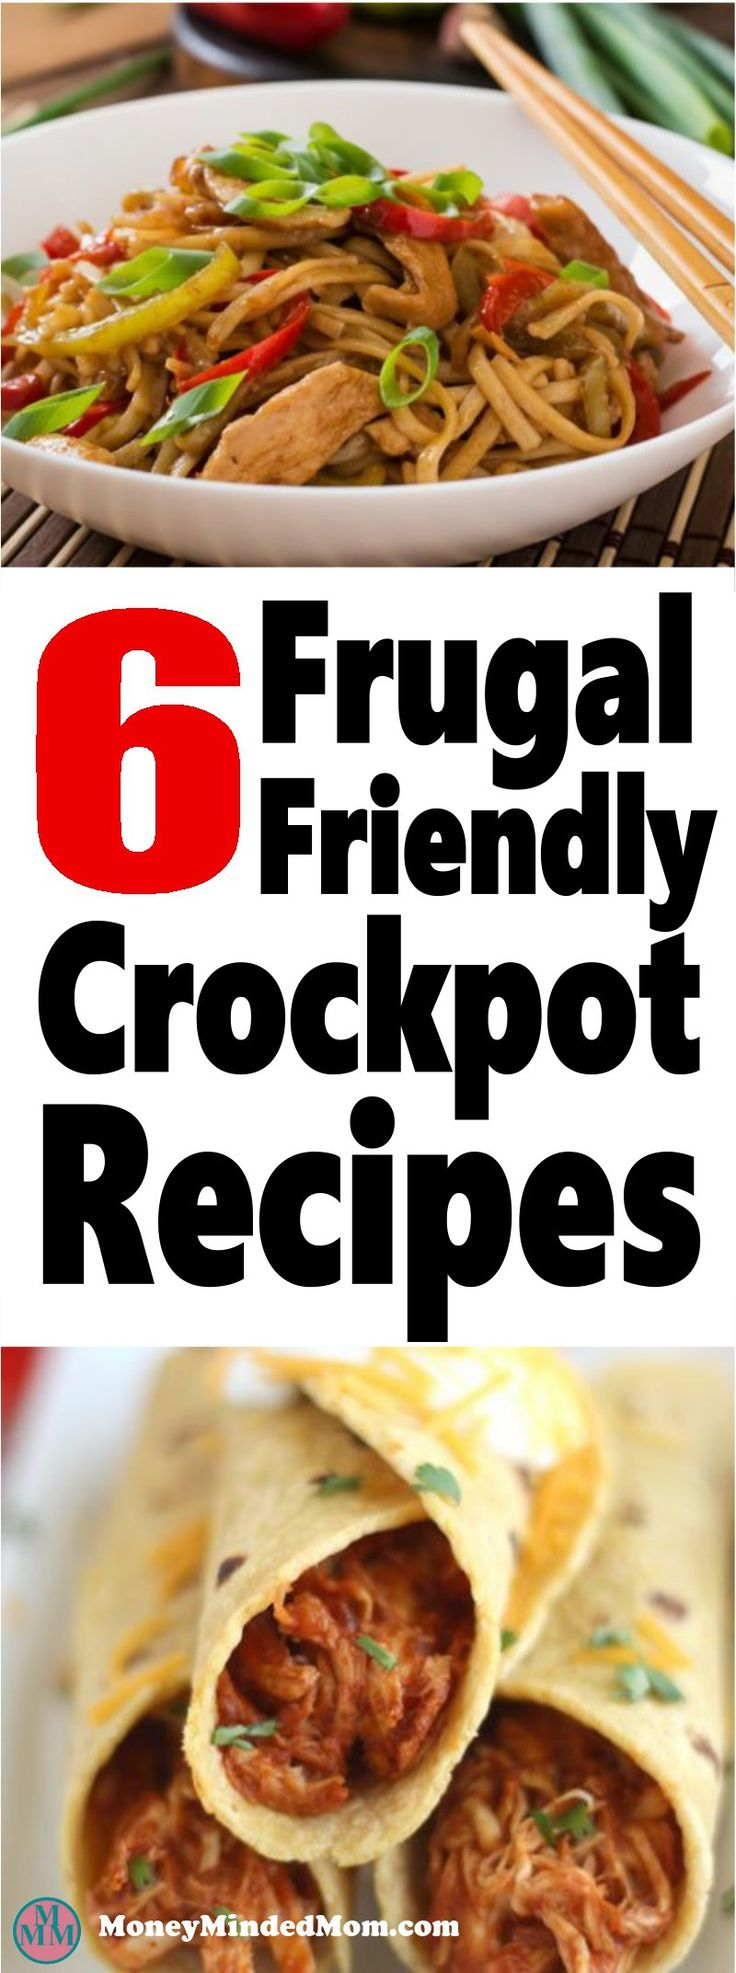 6 Frugal Friendly Crock Pot Meals ~ Crock pot meals are a great time and money saver in the kitchen. Check out these 6 delicious crockpot recipes that your family is sure to love!! crockpot | slowcooker | meal planning | cheap meals | frugal recipes | recipes #crockpot #mealplanning #slowcooker #recipes